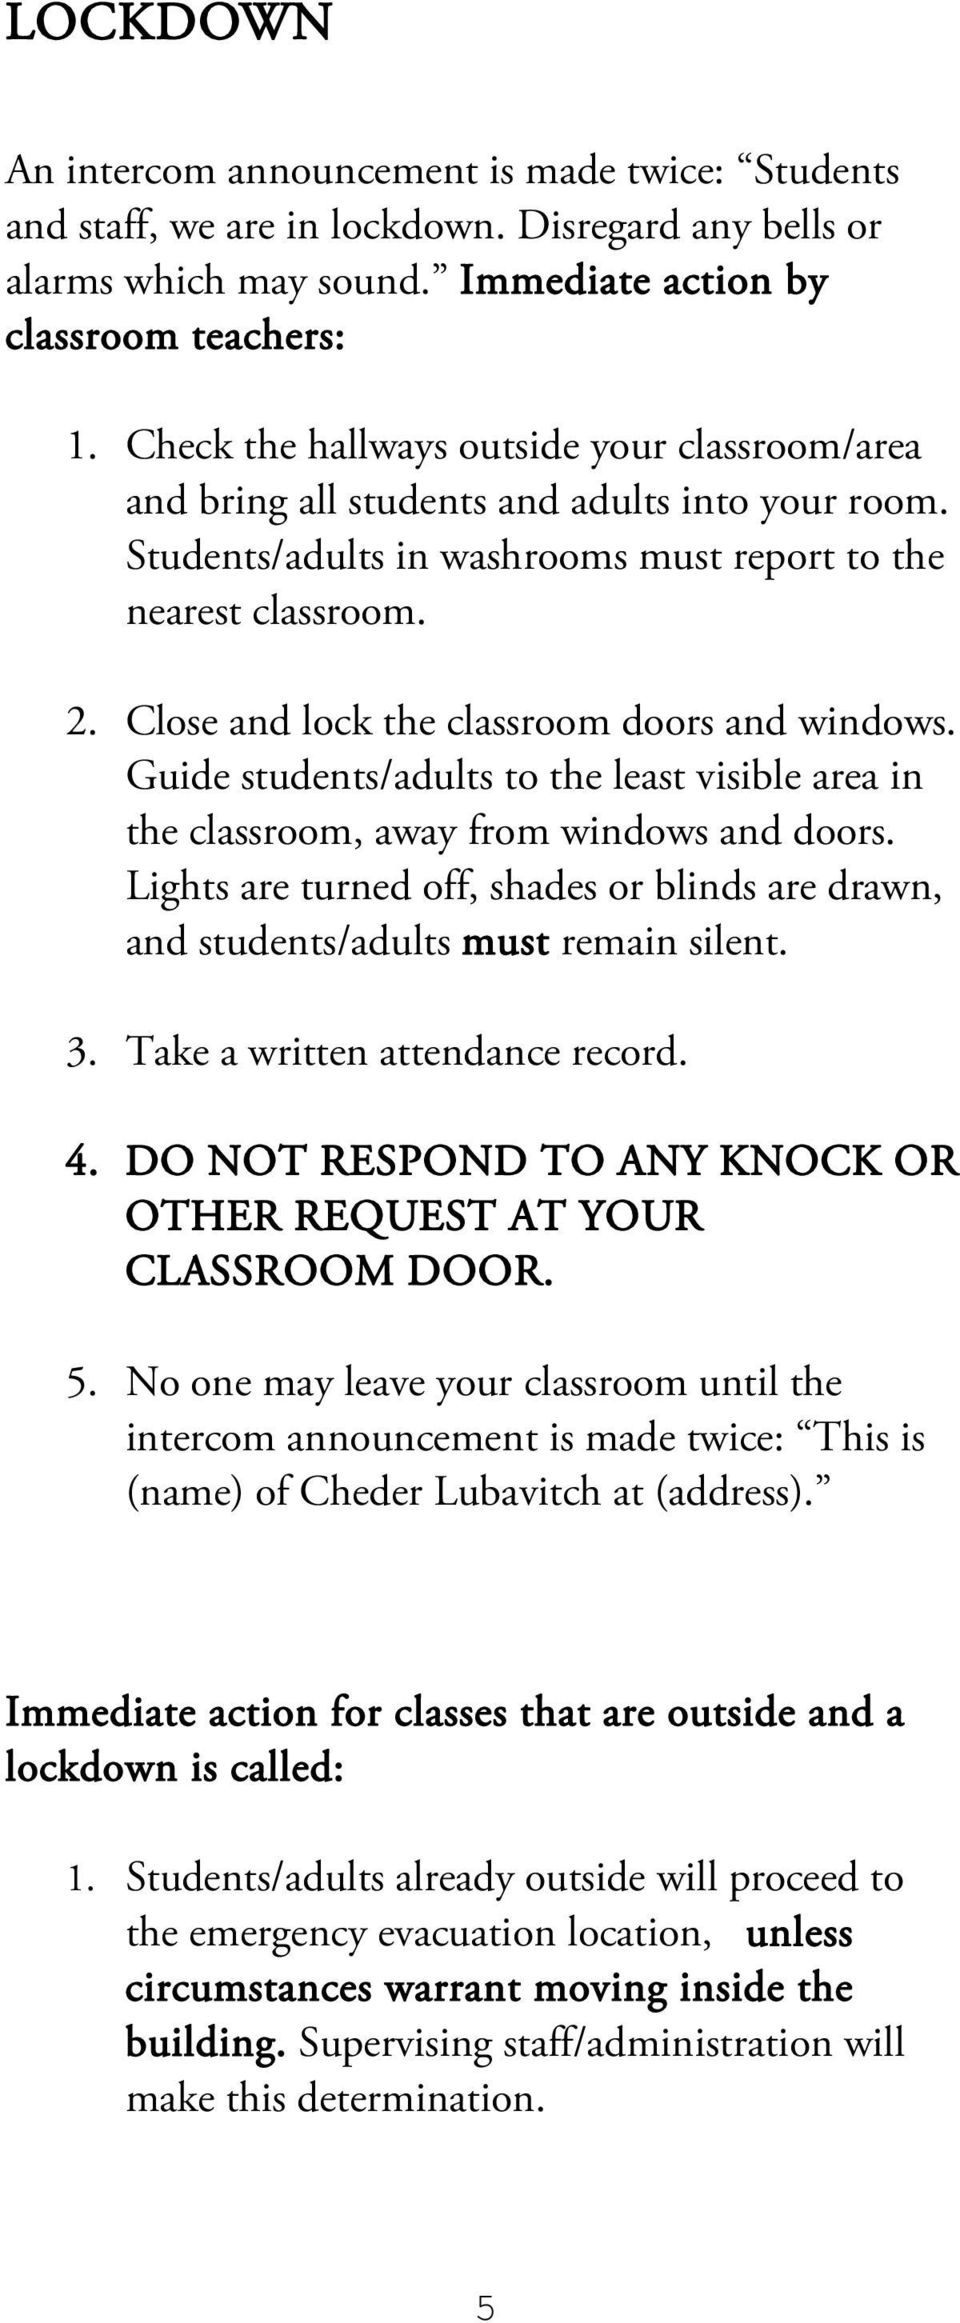 Close and lock the classroom doors and windows. Guide students/adults to the least visible area in the classroom, away from windows and doors.